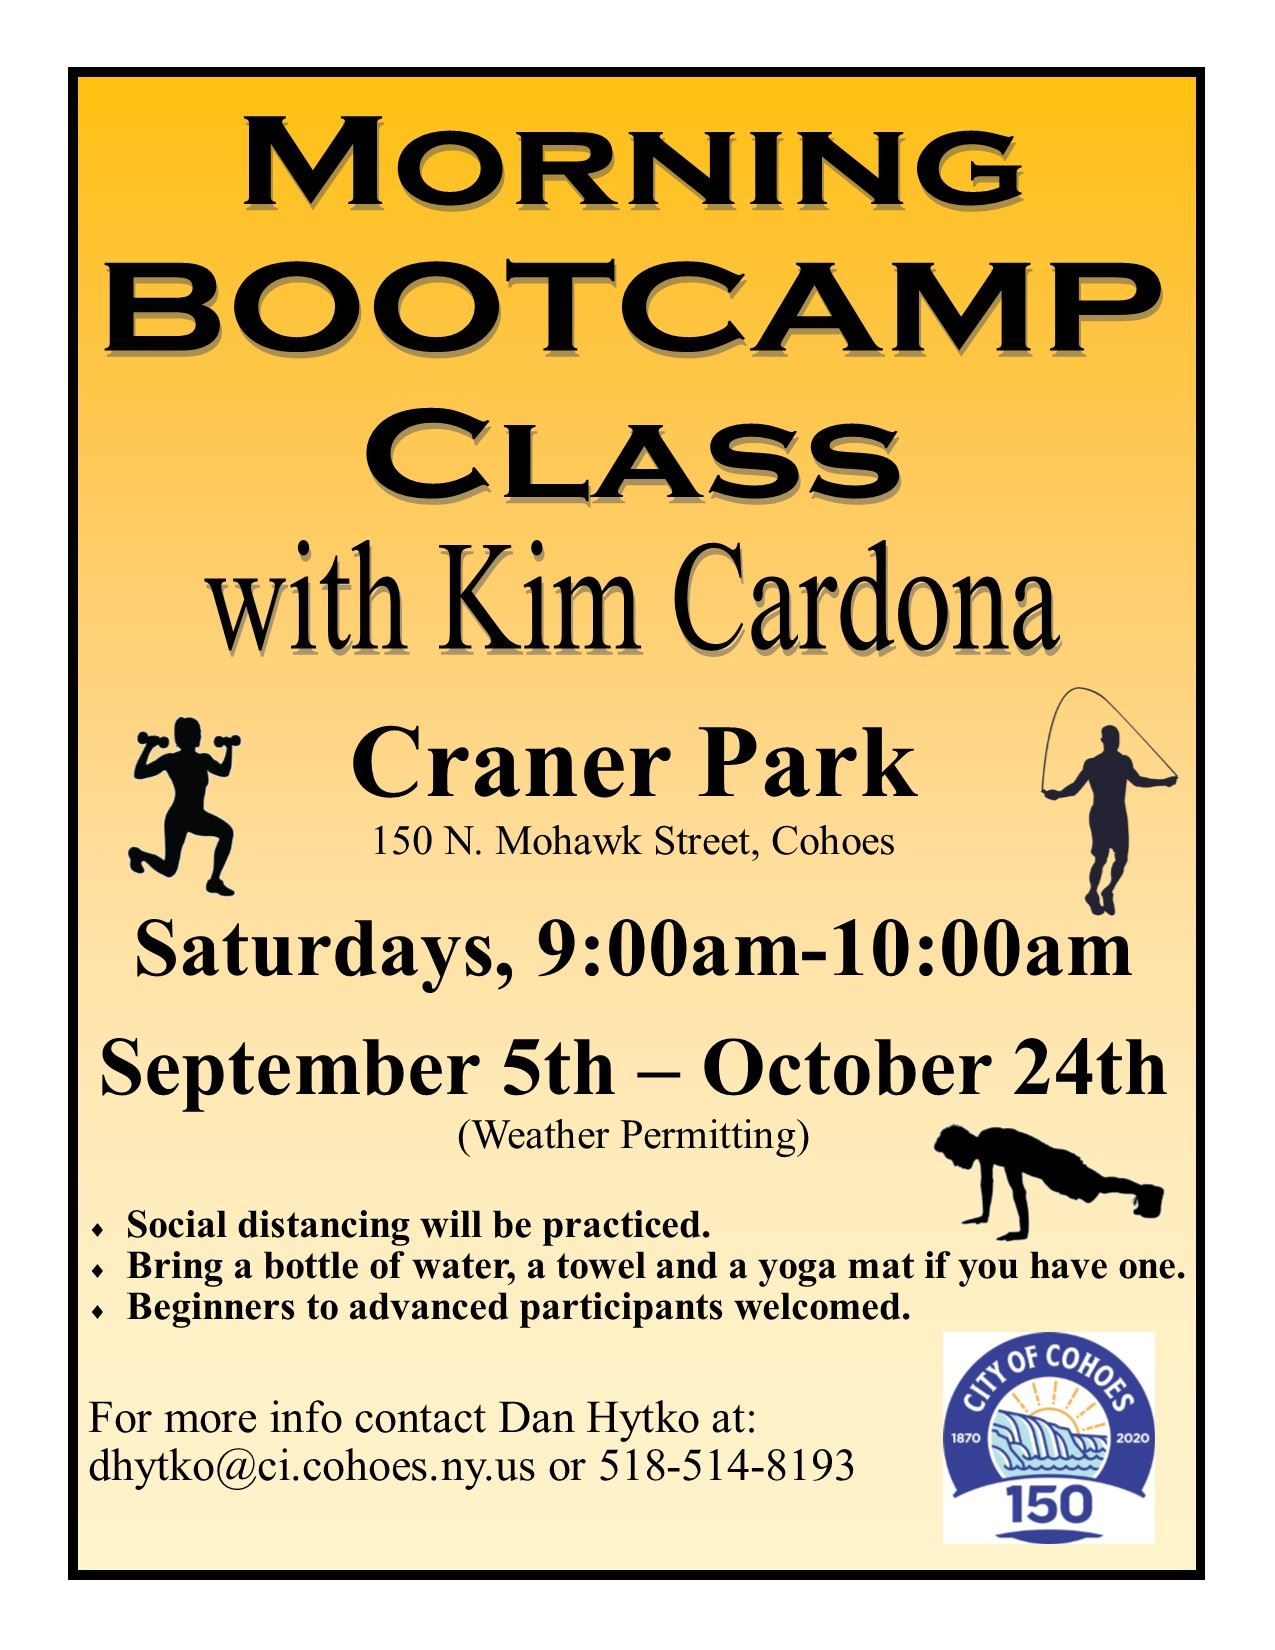 Bootcamp  flyer 9-5-10-24 fall session